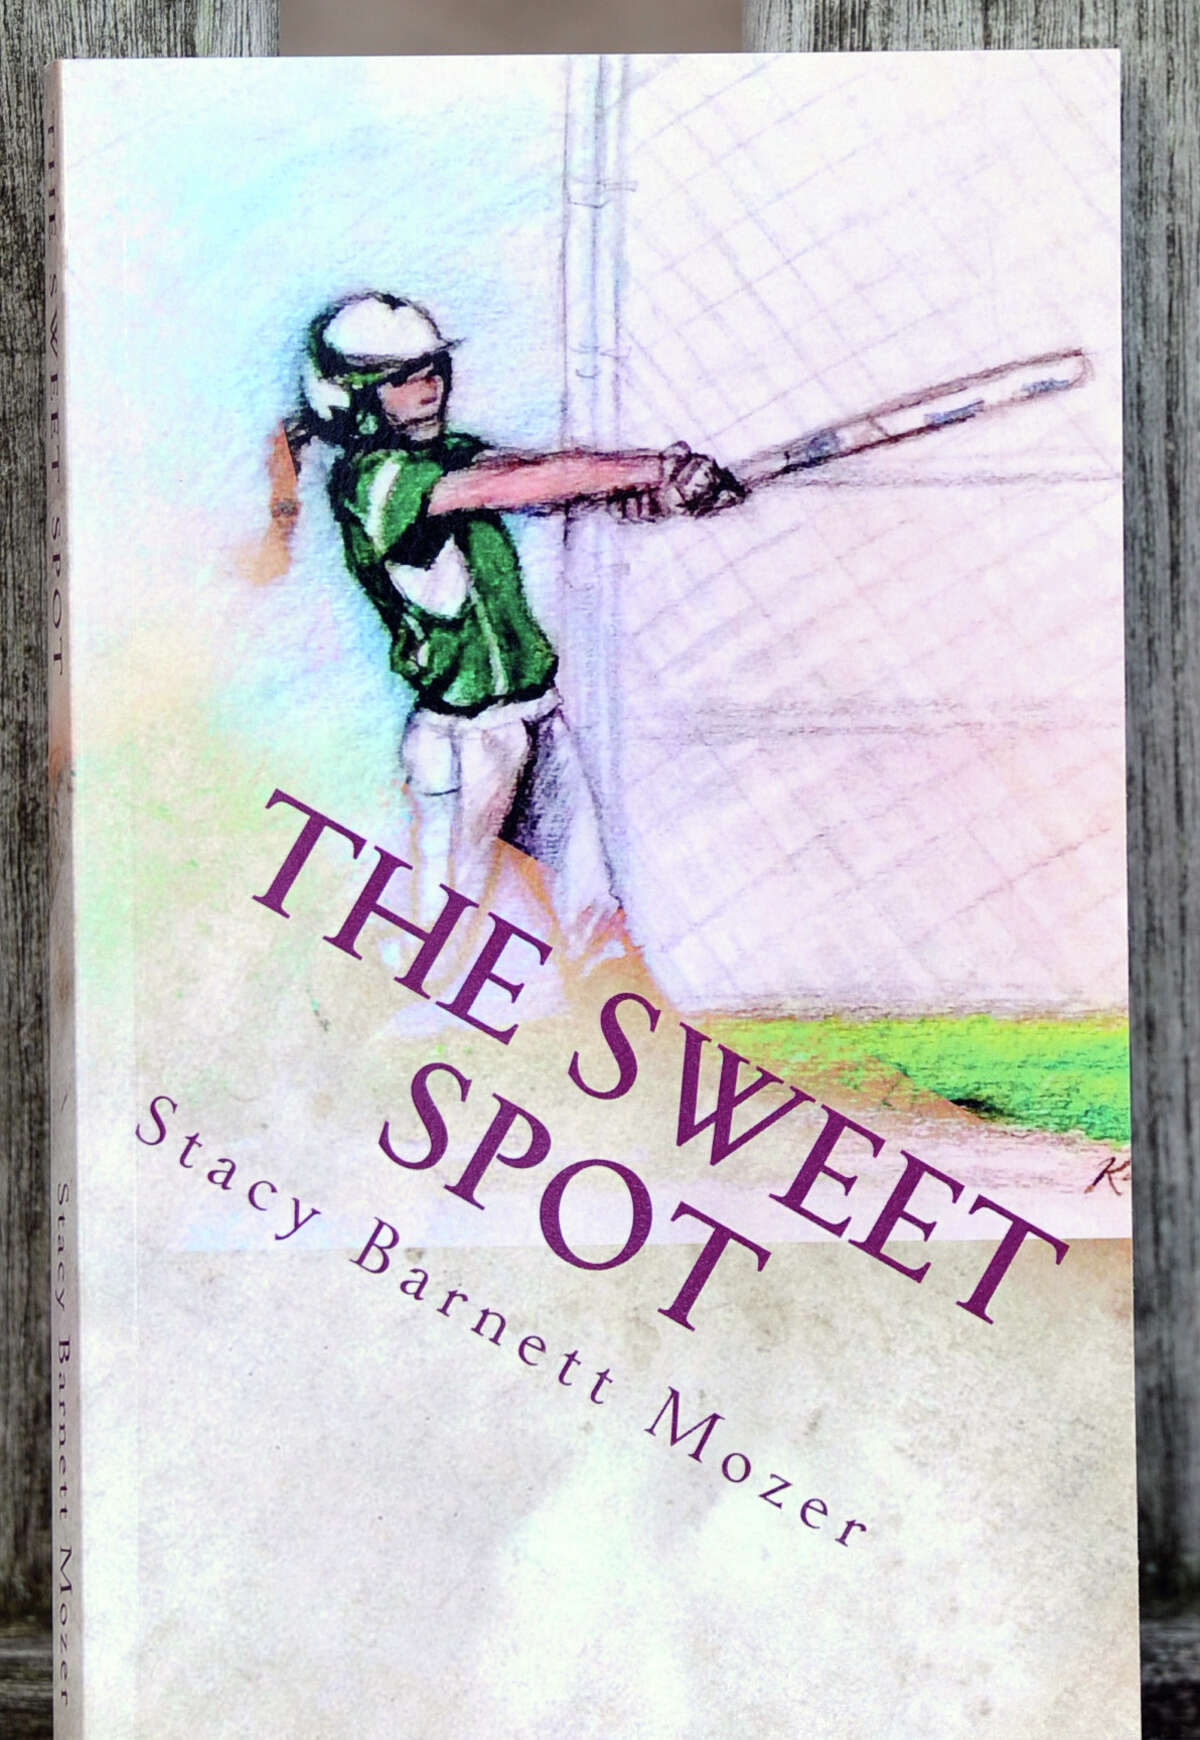 """Stacy Barnett Mozer's book """"The Sweet Spot,"""" about a 13-year-old girl baseball player participating as the only girl in a 13U league, at the Riverside School in the Riverside section of Greenwich, Conn., Tuesday, Aug. 4, 2015. The cover artwork for the book was done by Karen Jacobson, a retired Riverside School art teacher."""